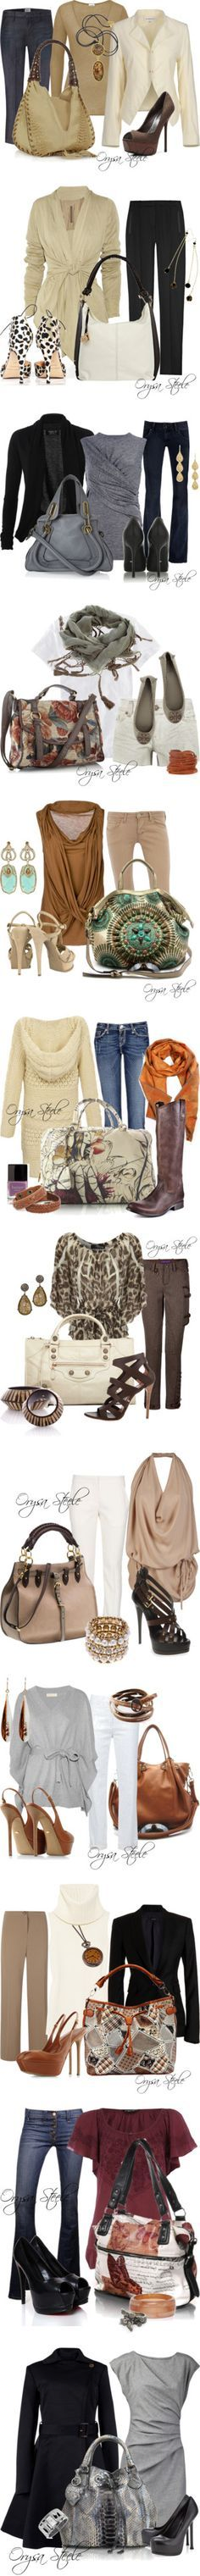 """""""Oh That Handbag"""" by orysa on Polyvore"""